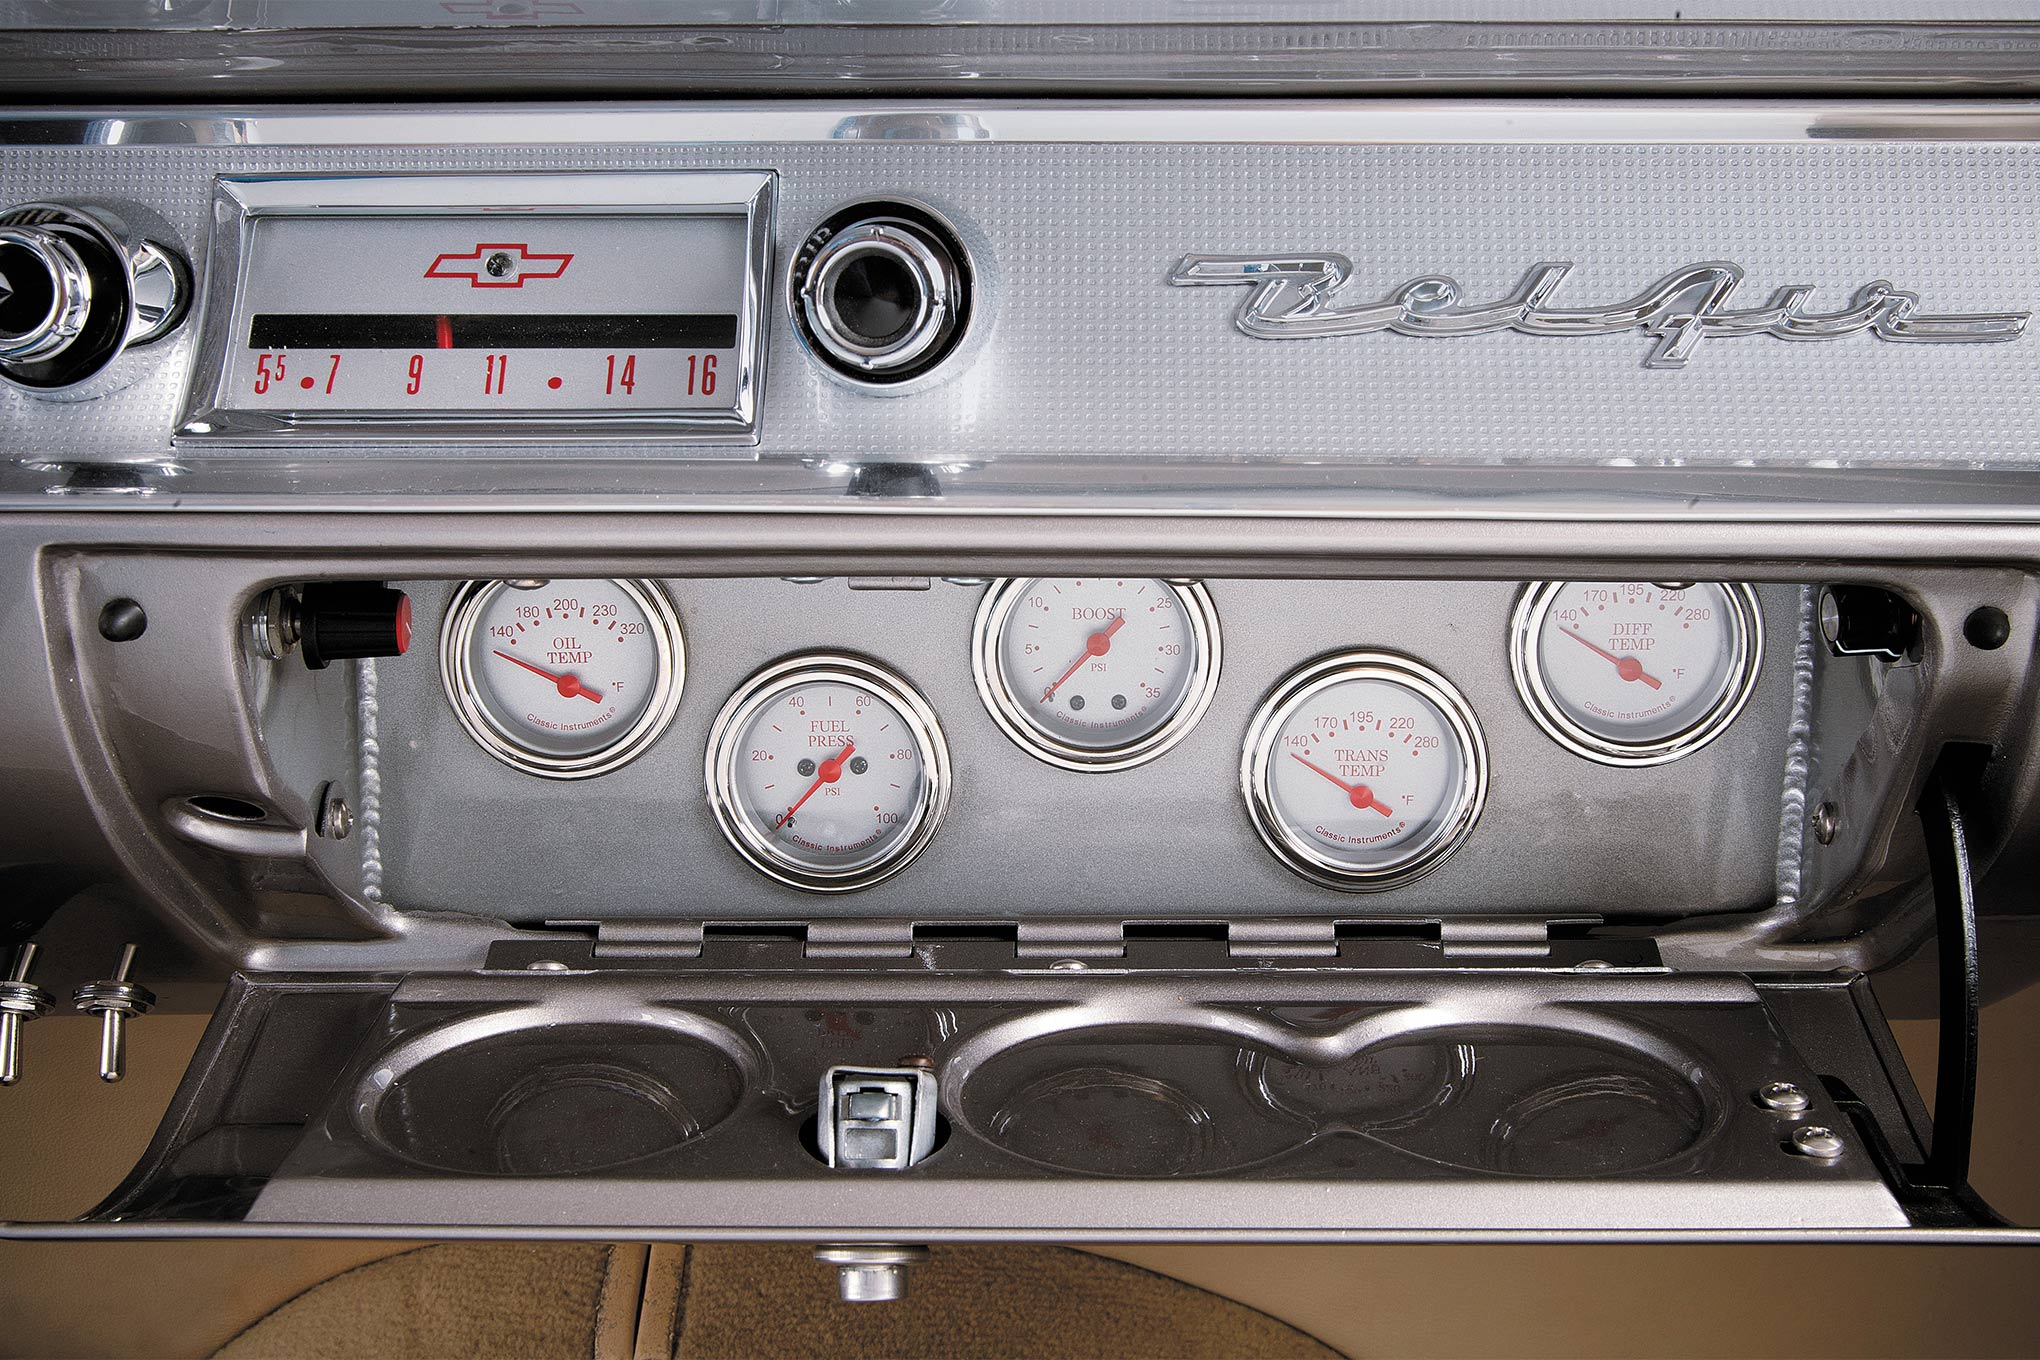 The stock dash is outfitted with Classic Instruments while the factory wheel was downsized to 14 inches and mounted on top of a Flaming River tilt column. The series input comes from these custom Classic Instrument gauges neatly packaged within the glovebox; oil temp, fuel pressure, boost, trans temp, and differential (yes, rearend) temp.